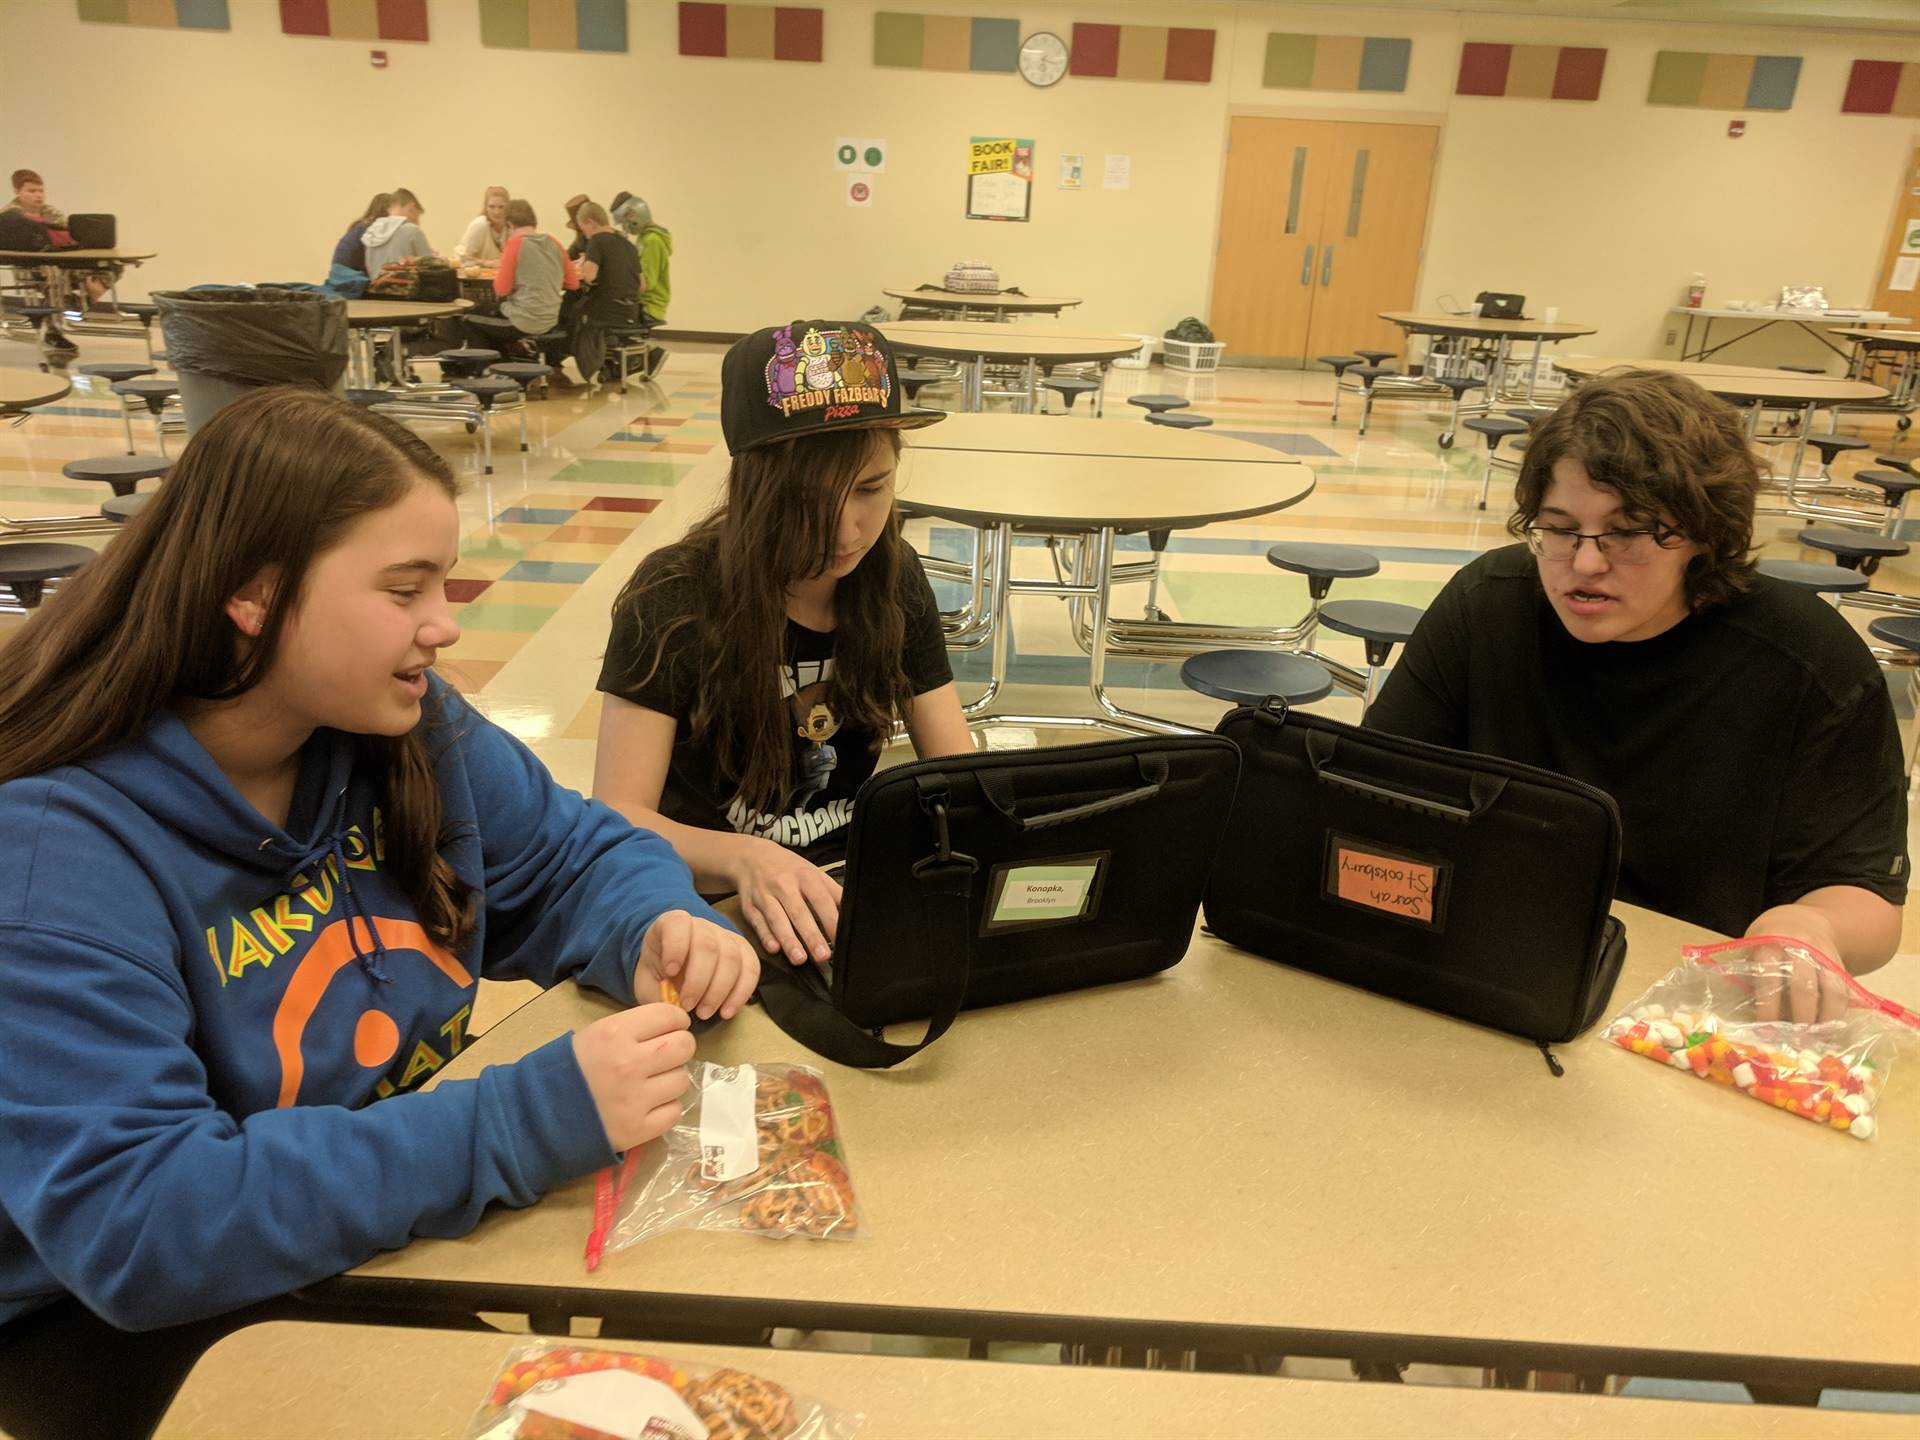 Madison, Brooklyn and Sarah snacking and collaborating!